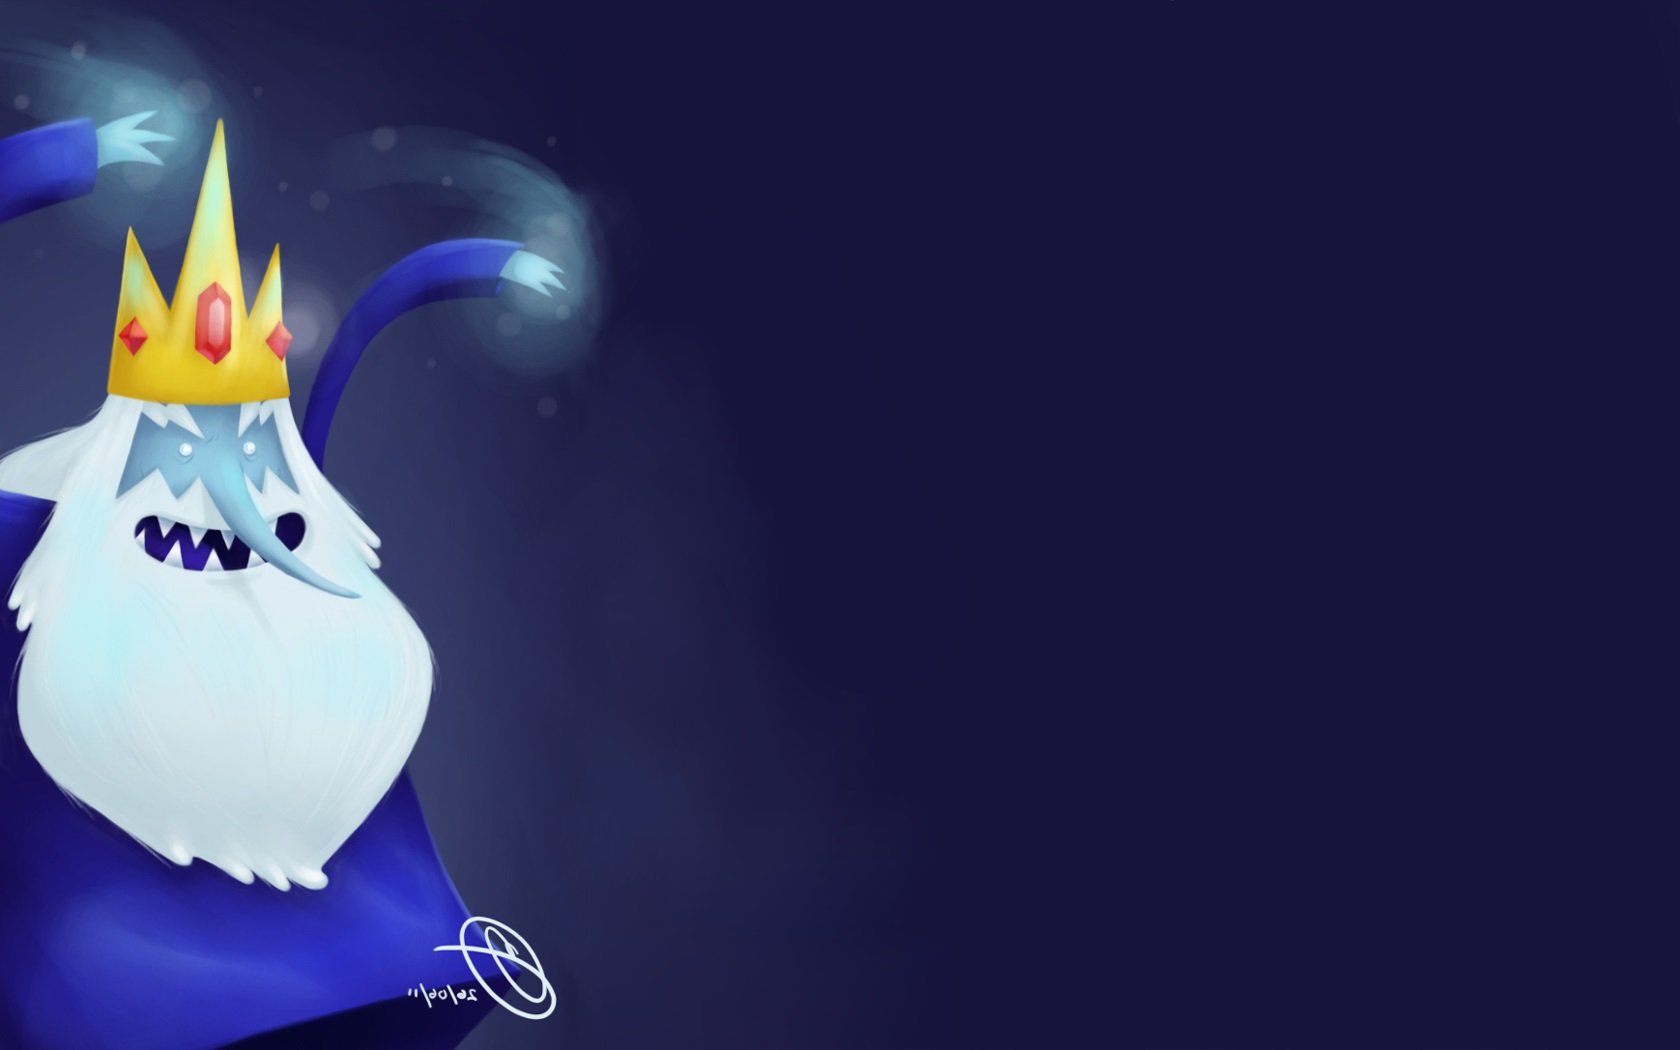 Ice King Adventure Time Wallpaper HD